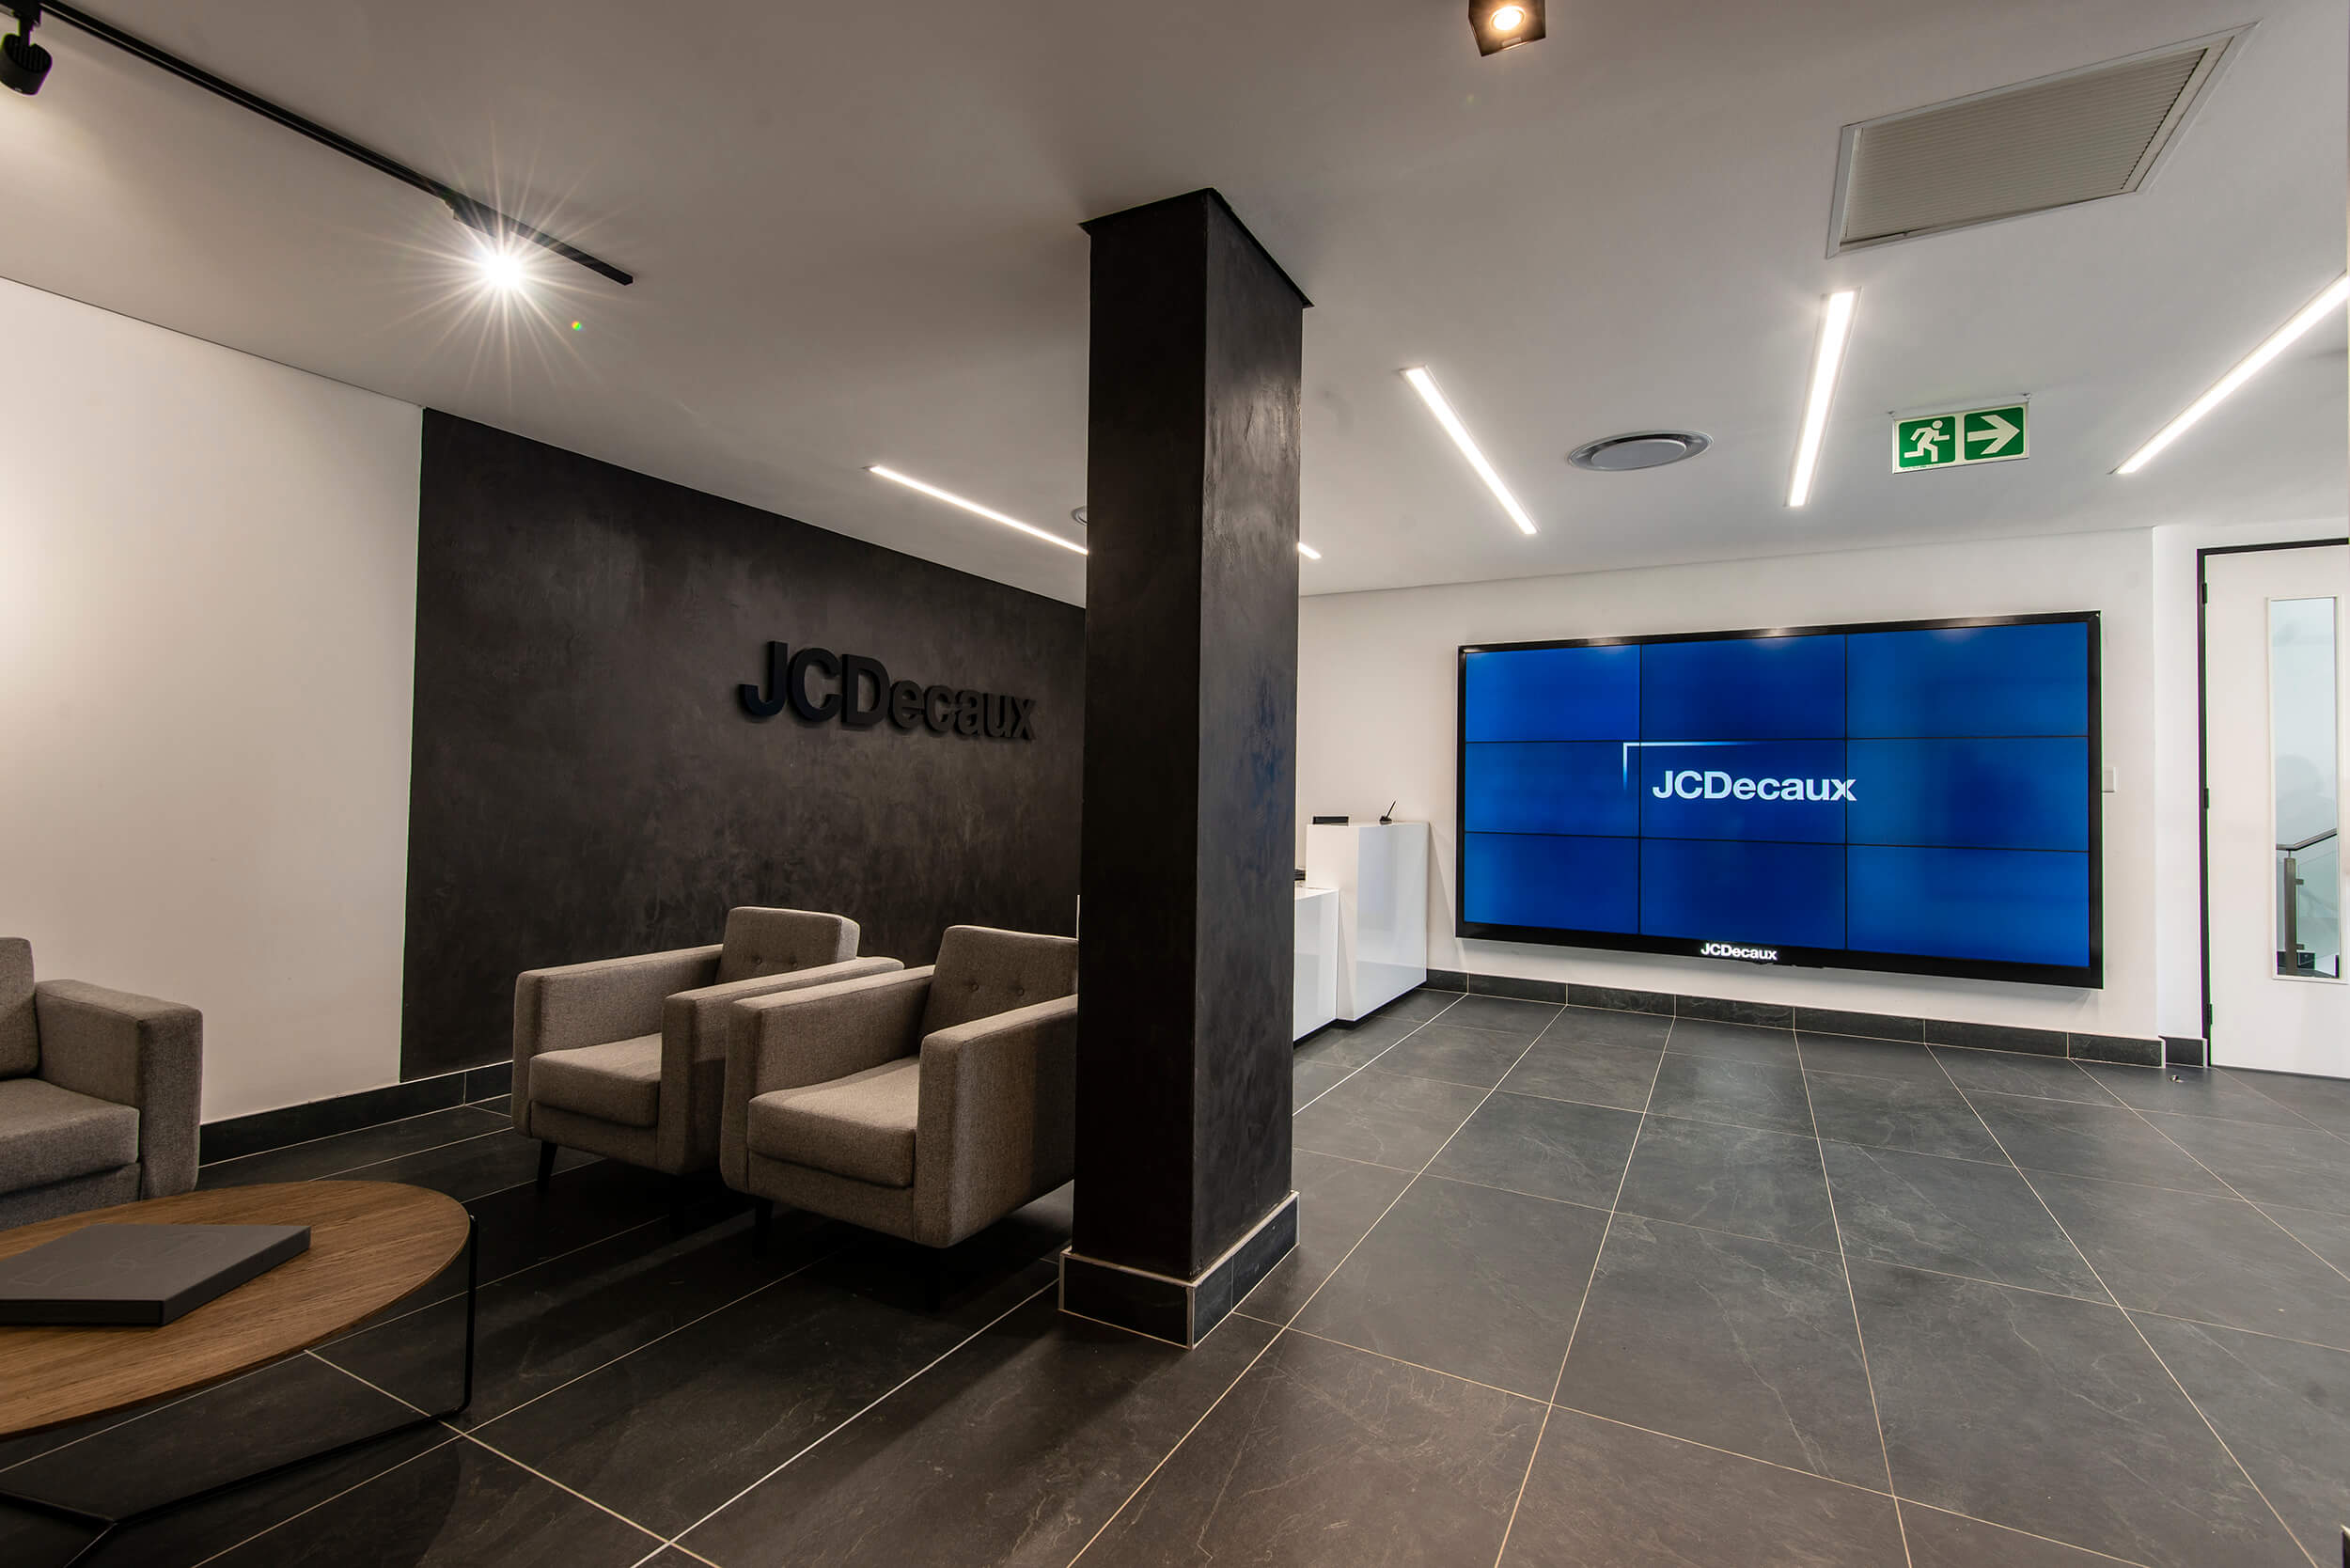 JCDecaux - Turnkey Interiors - Corporate Interior Design and Build